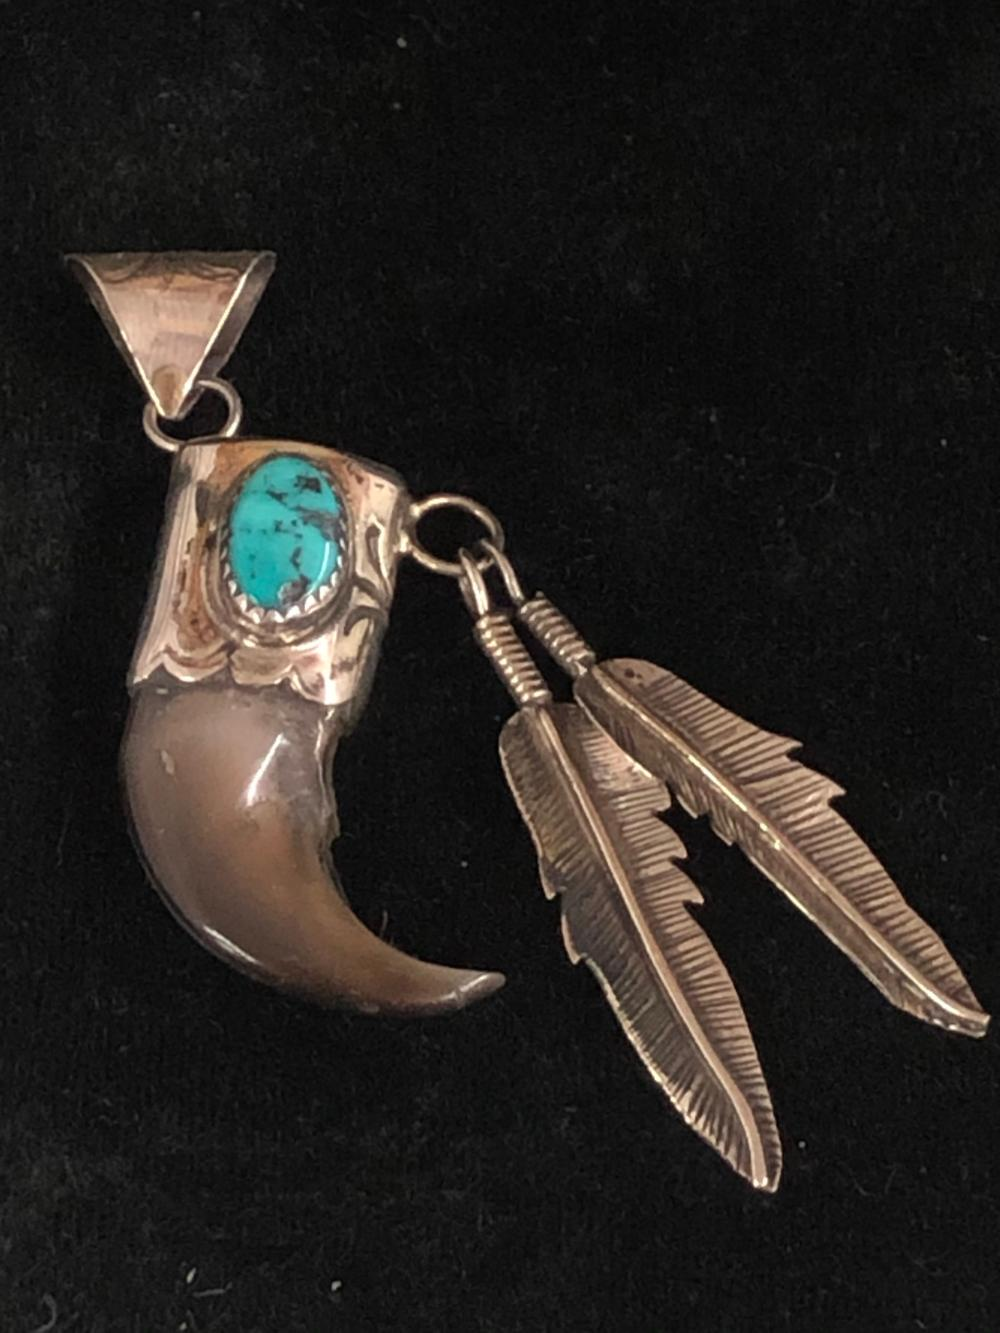 Bear claw sterling silver pendant with two feathers